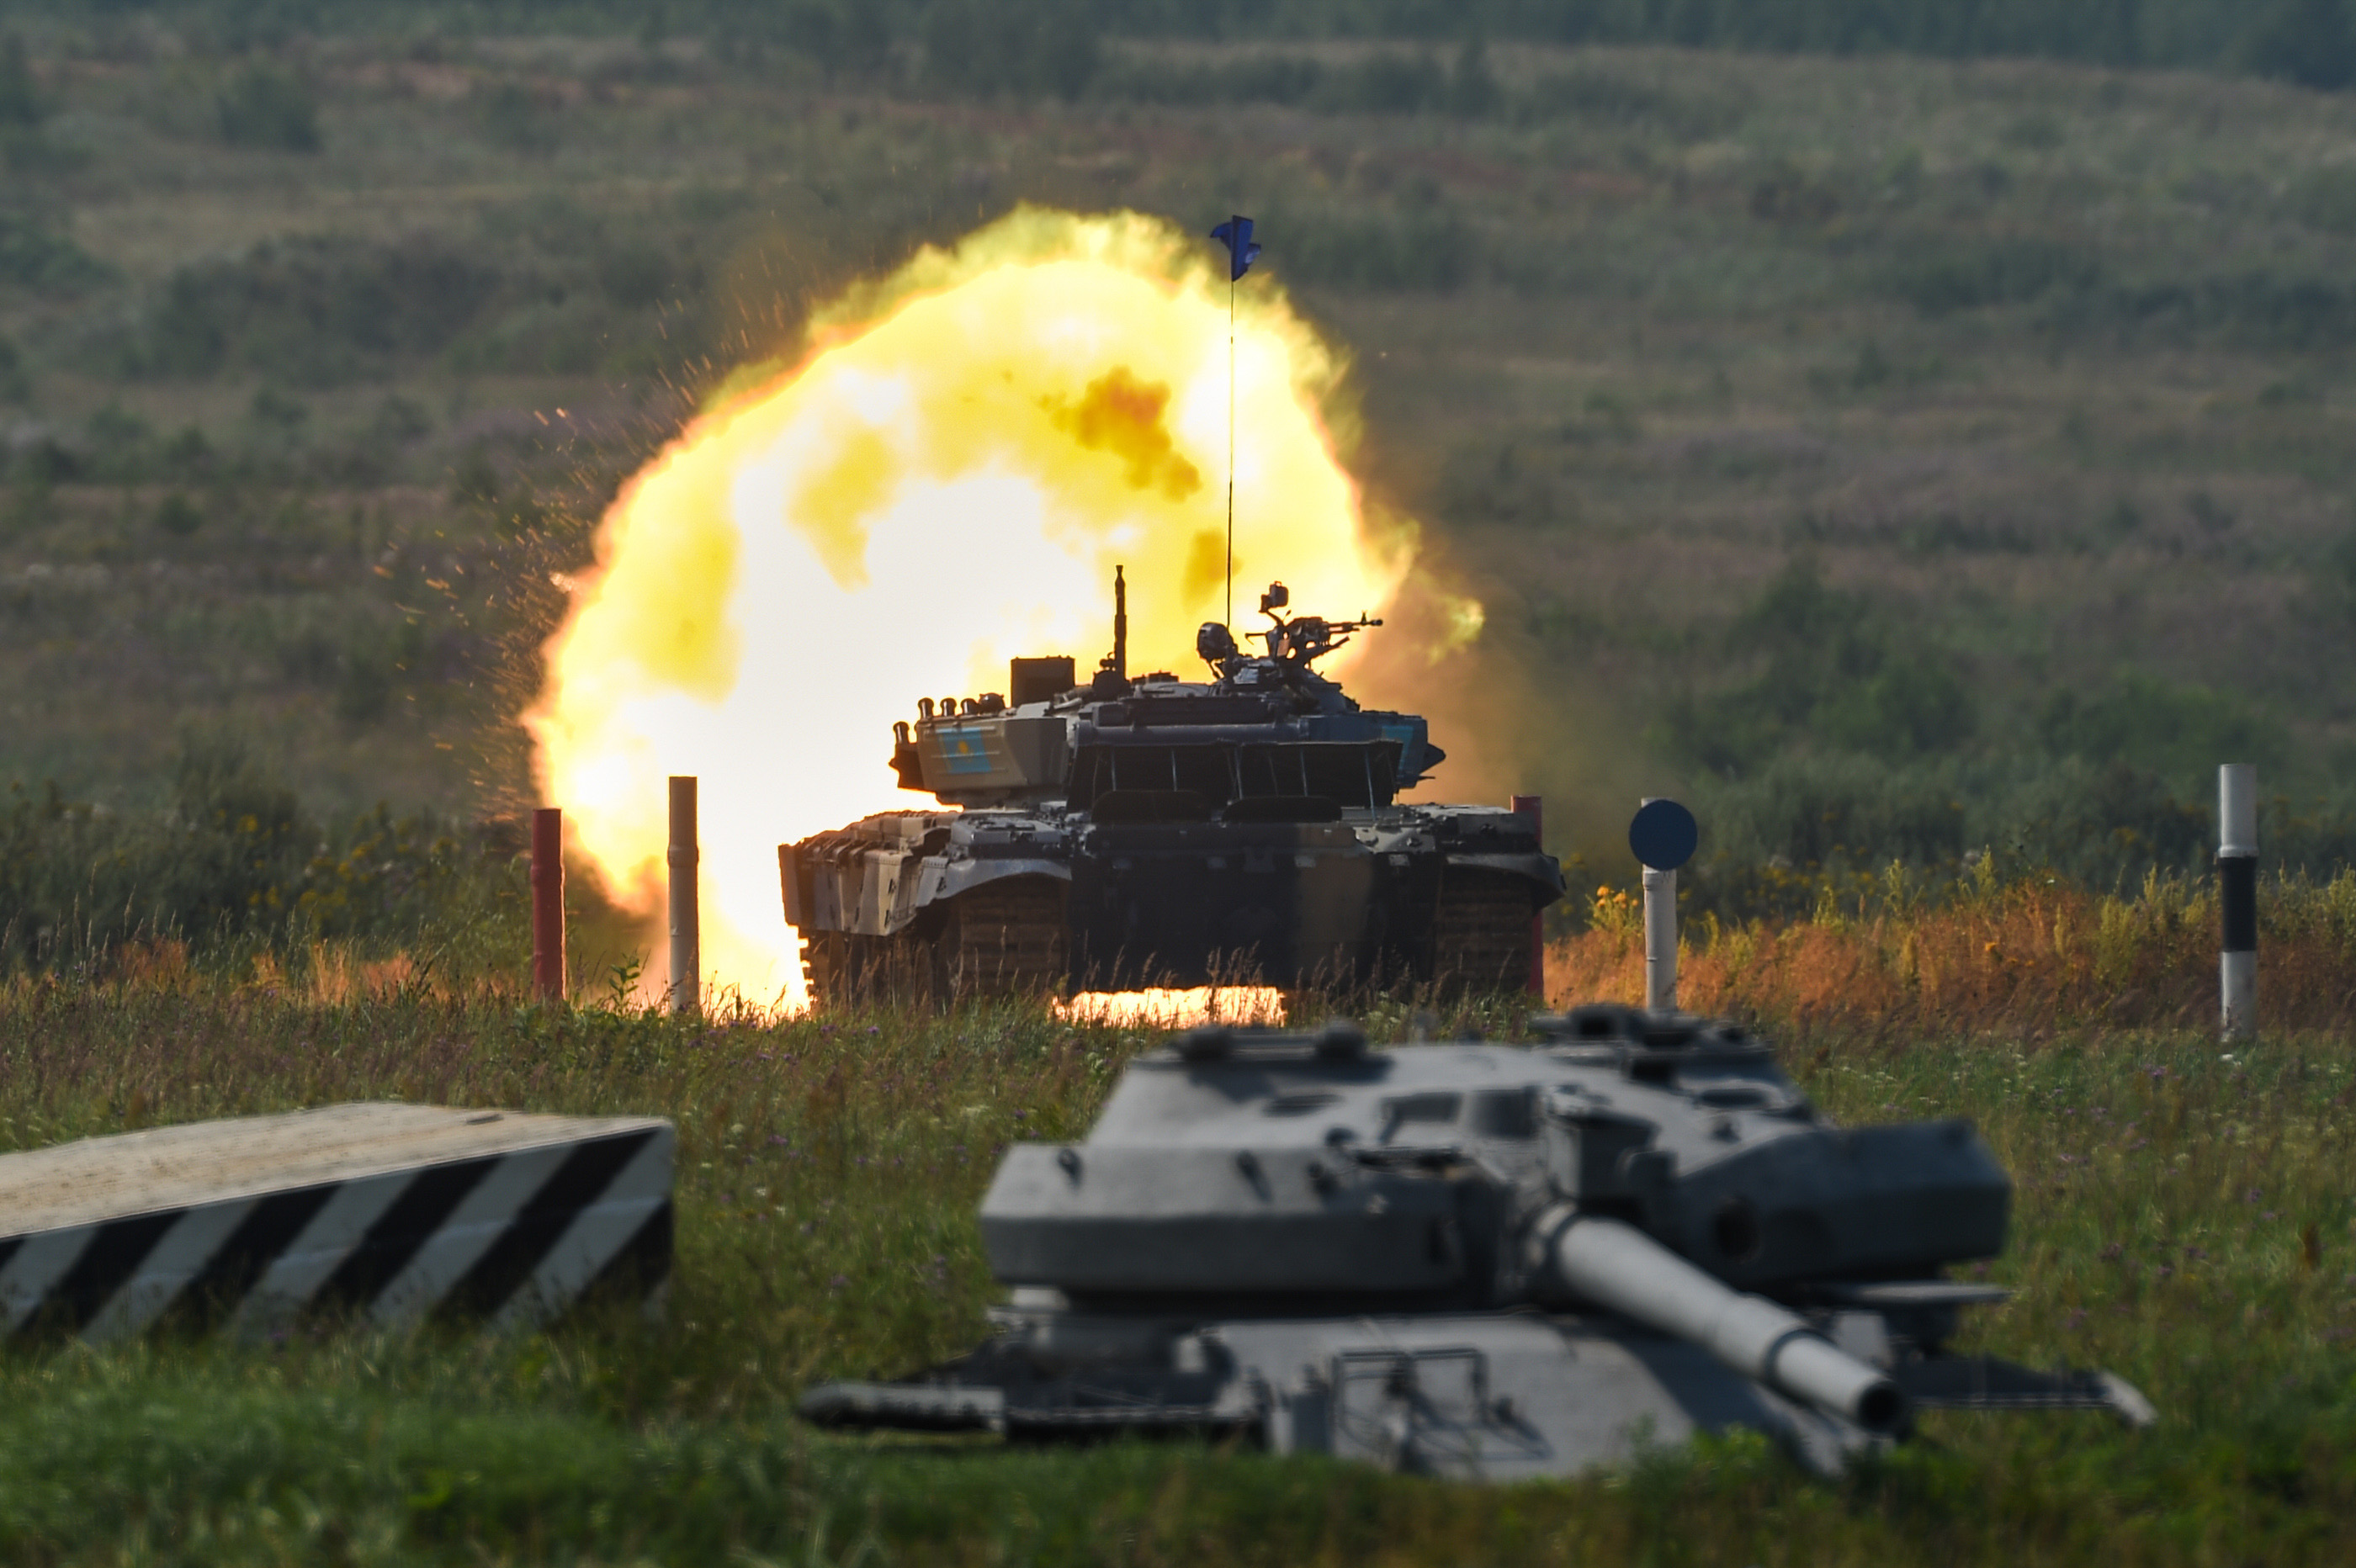 Video: IV International Army Games 2018 kicks off in Russia